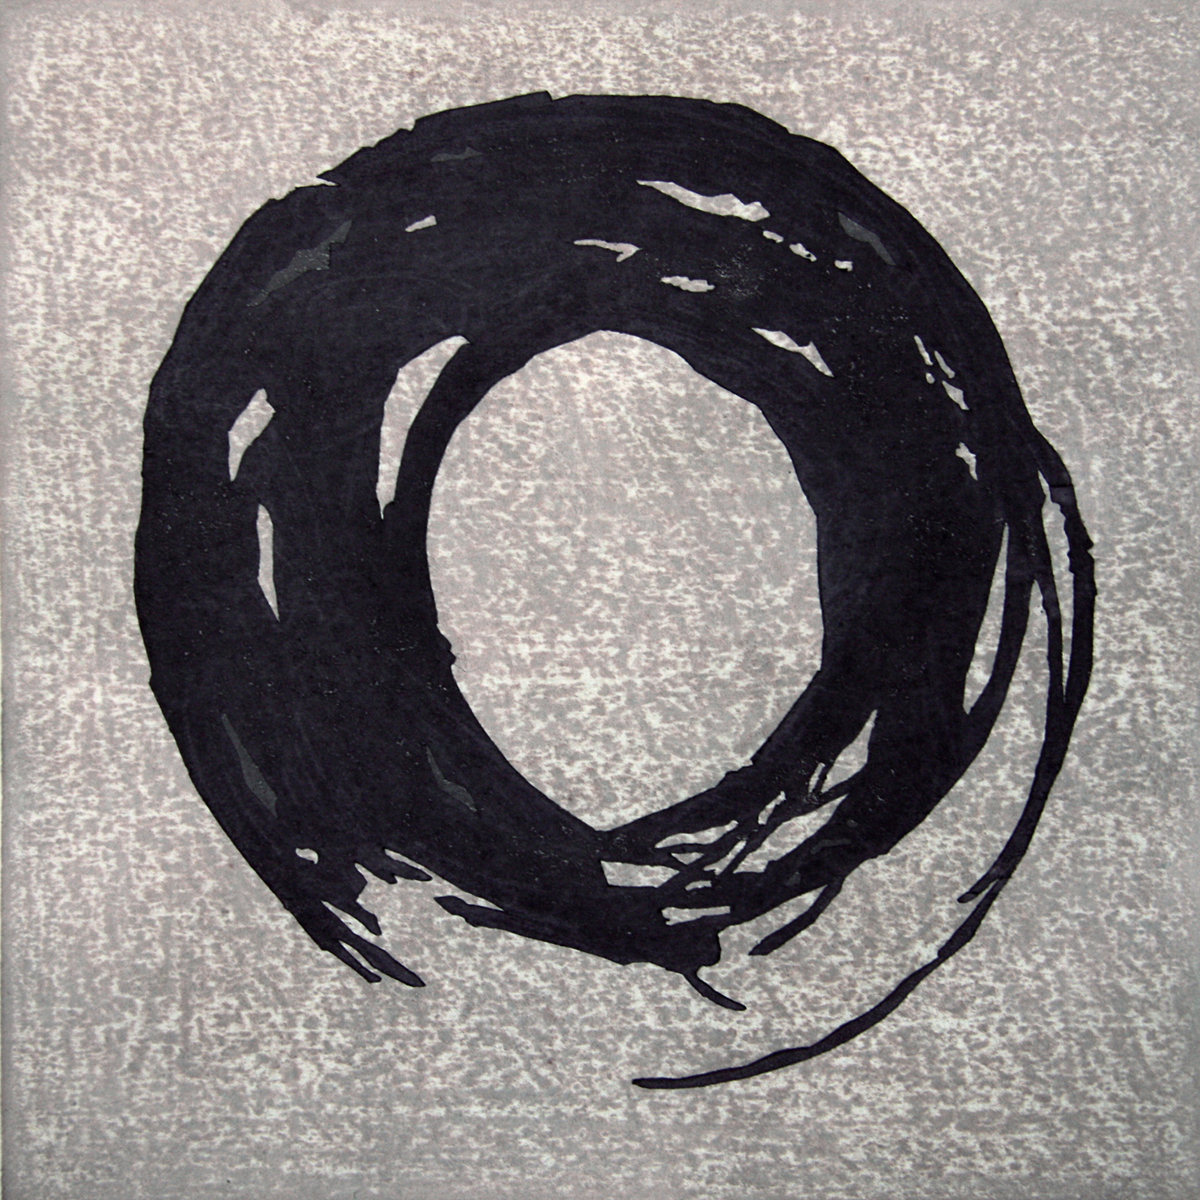 Enso 4 (large view)